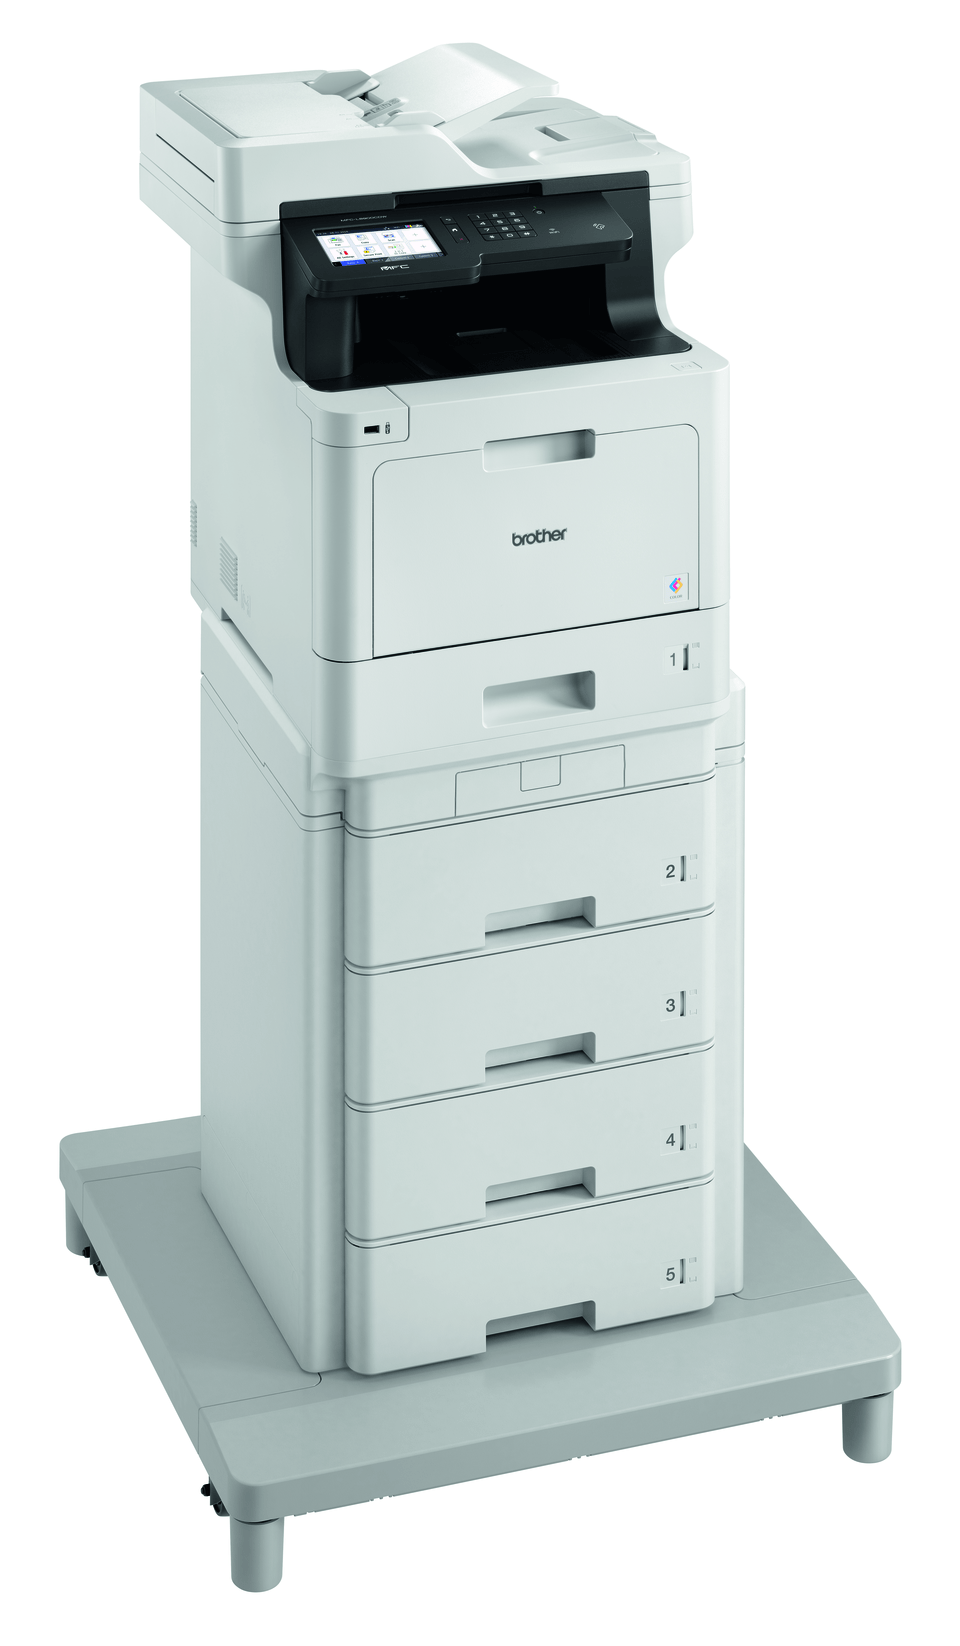 MFC-L8900CDWMT Professional Colour, Duplex, Wireless Laser All-in-one Printer + Tower Tray + Tower Tray Connector 3